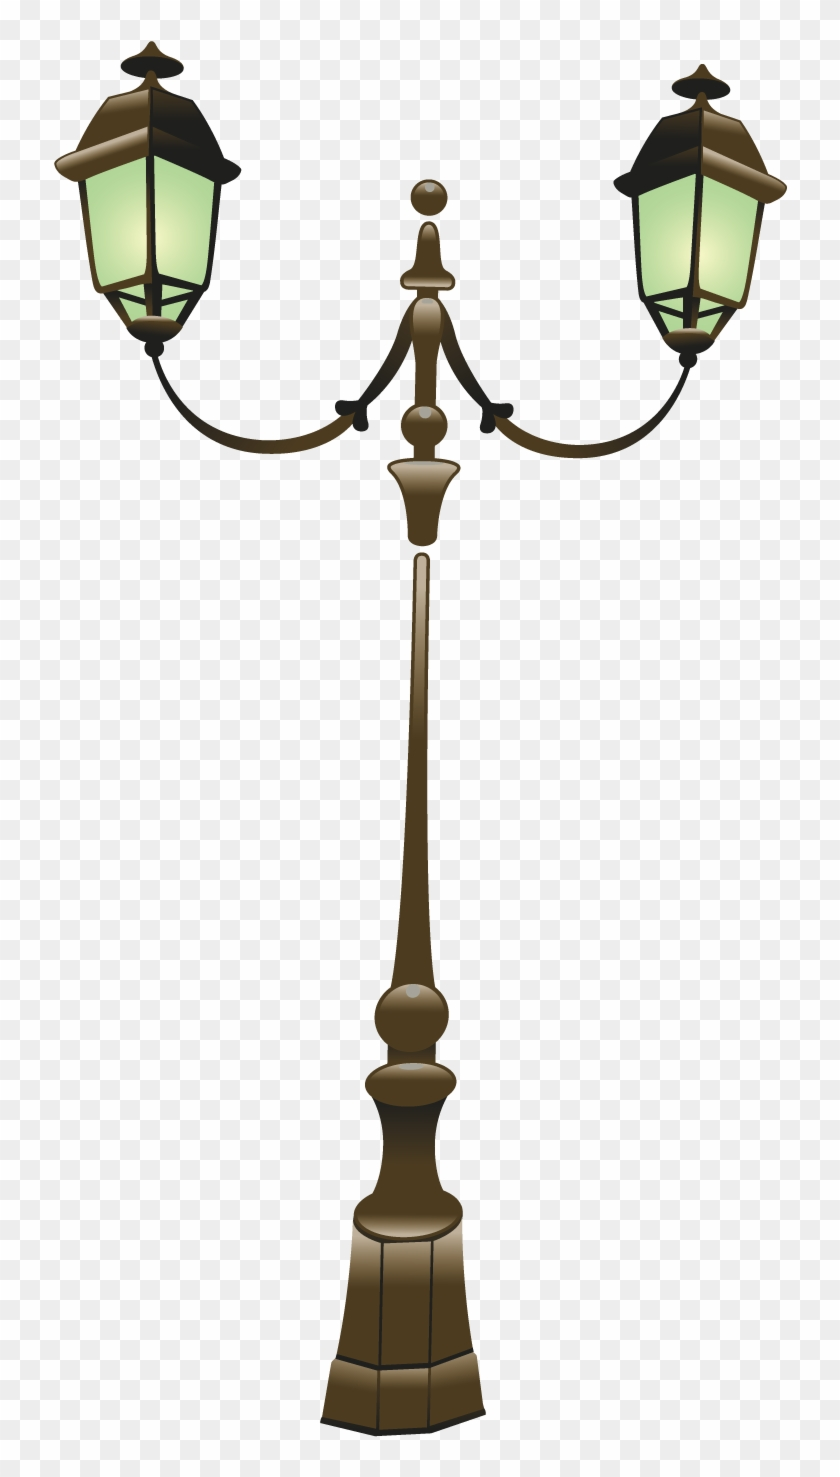 Lampu Jalan Png : lampu, jalan, Street, Light, Clipart, Nightlight, Lampu, Jalan, Vektor, Transparent, Images, Download